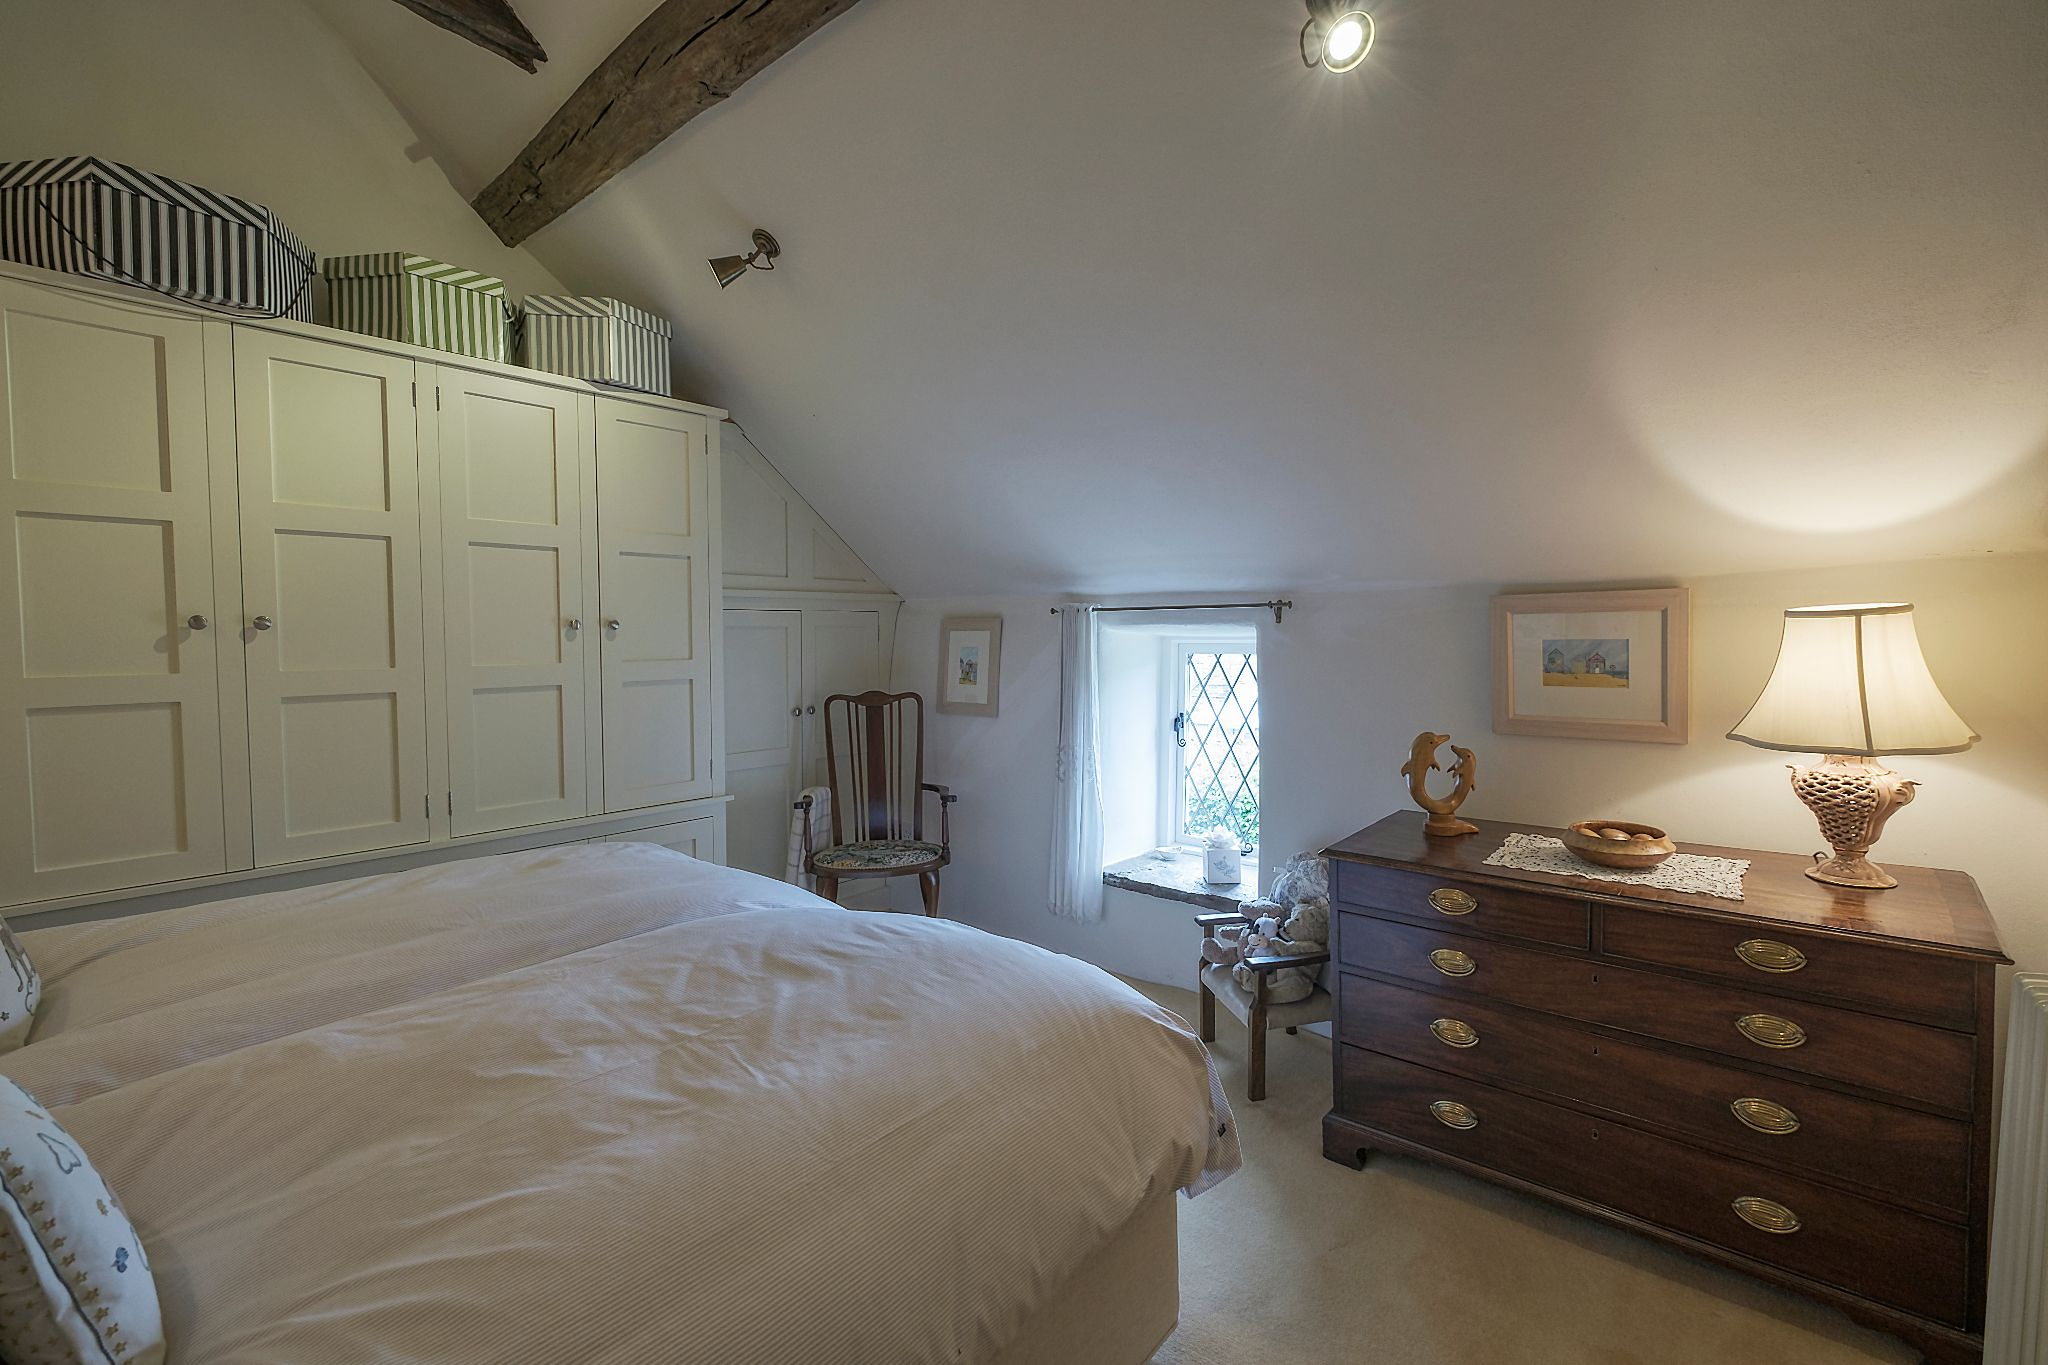 Farm House For Sale in Halifax - Bedroom 2.